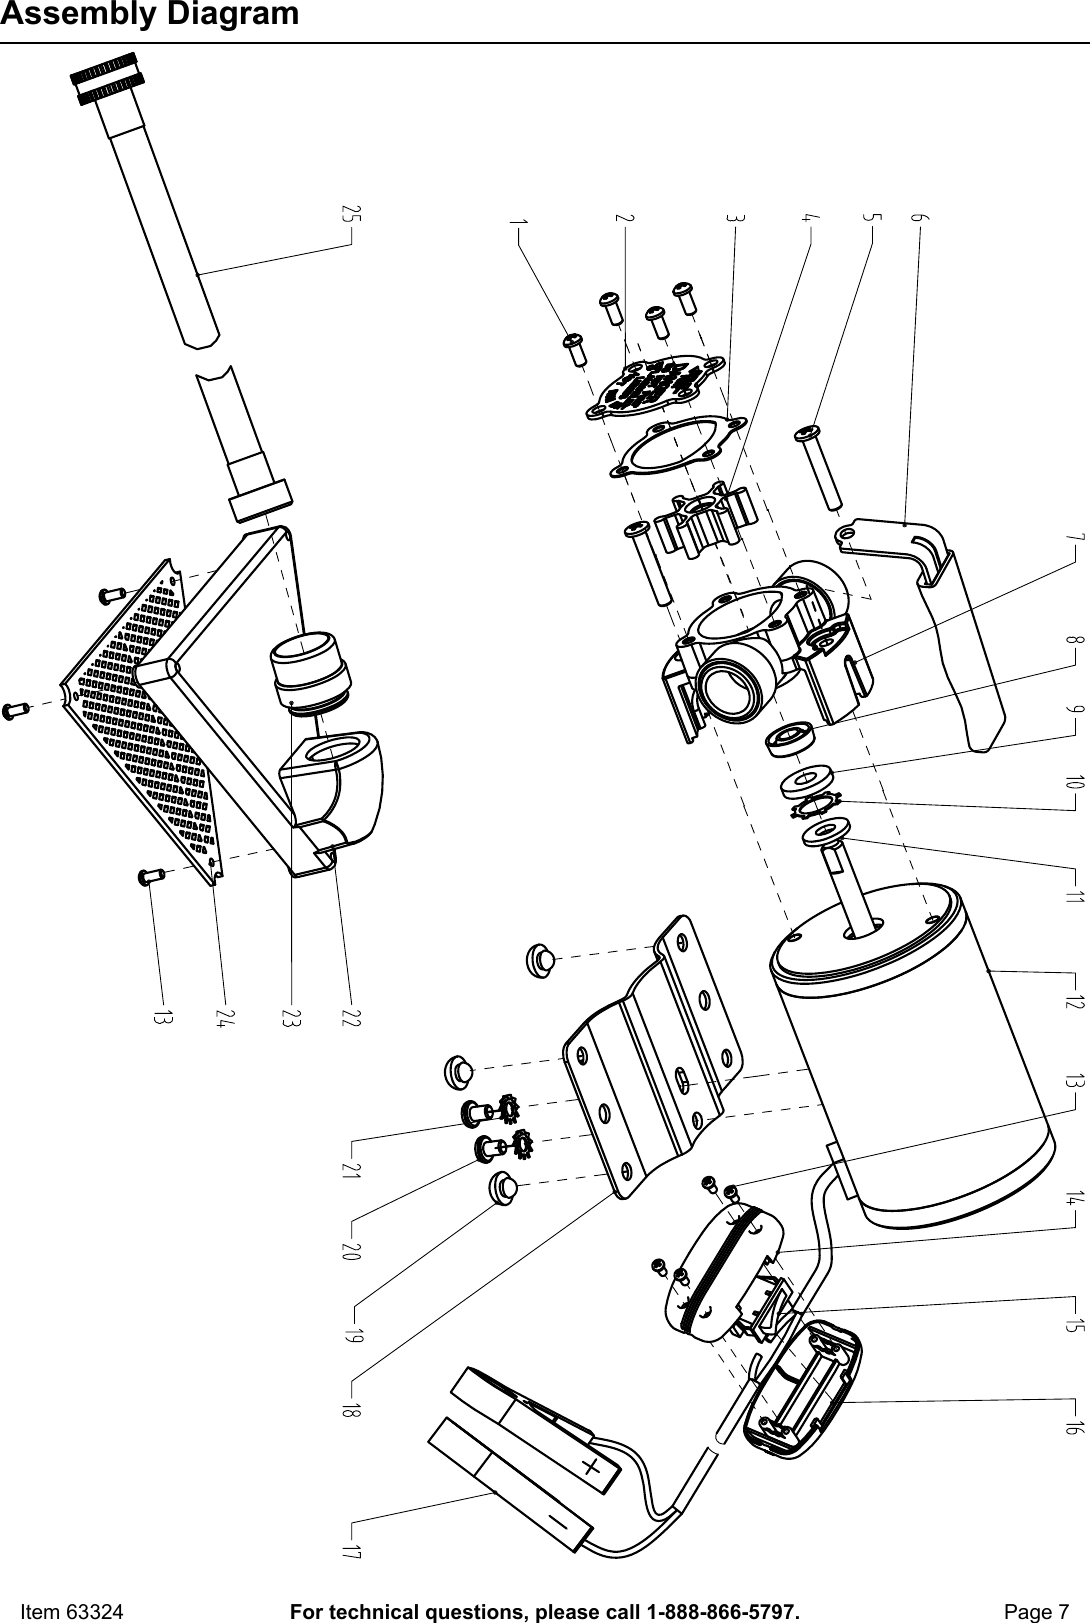 Manual For The 63324 12 Volt DC Transfer Pump